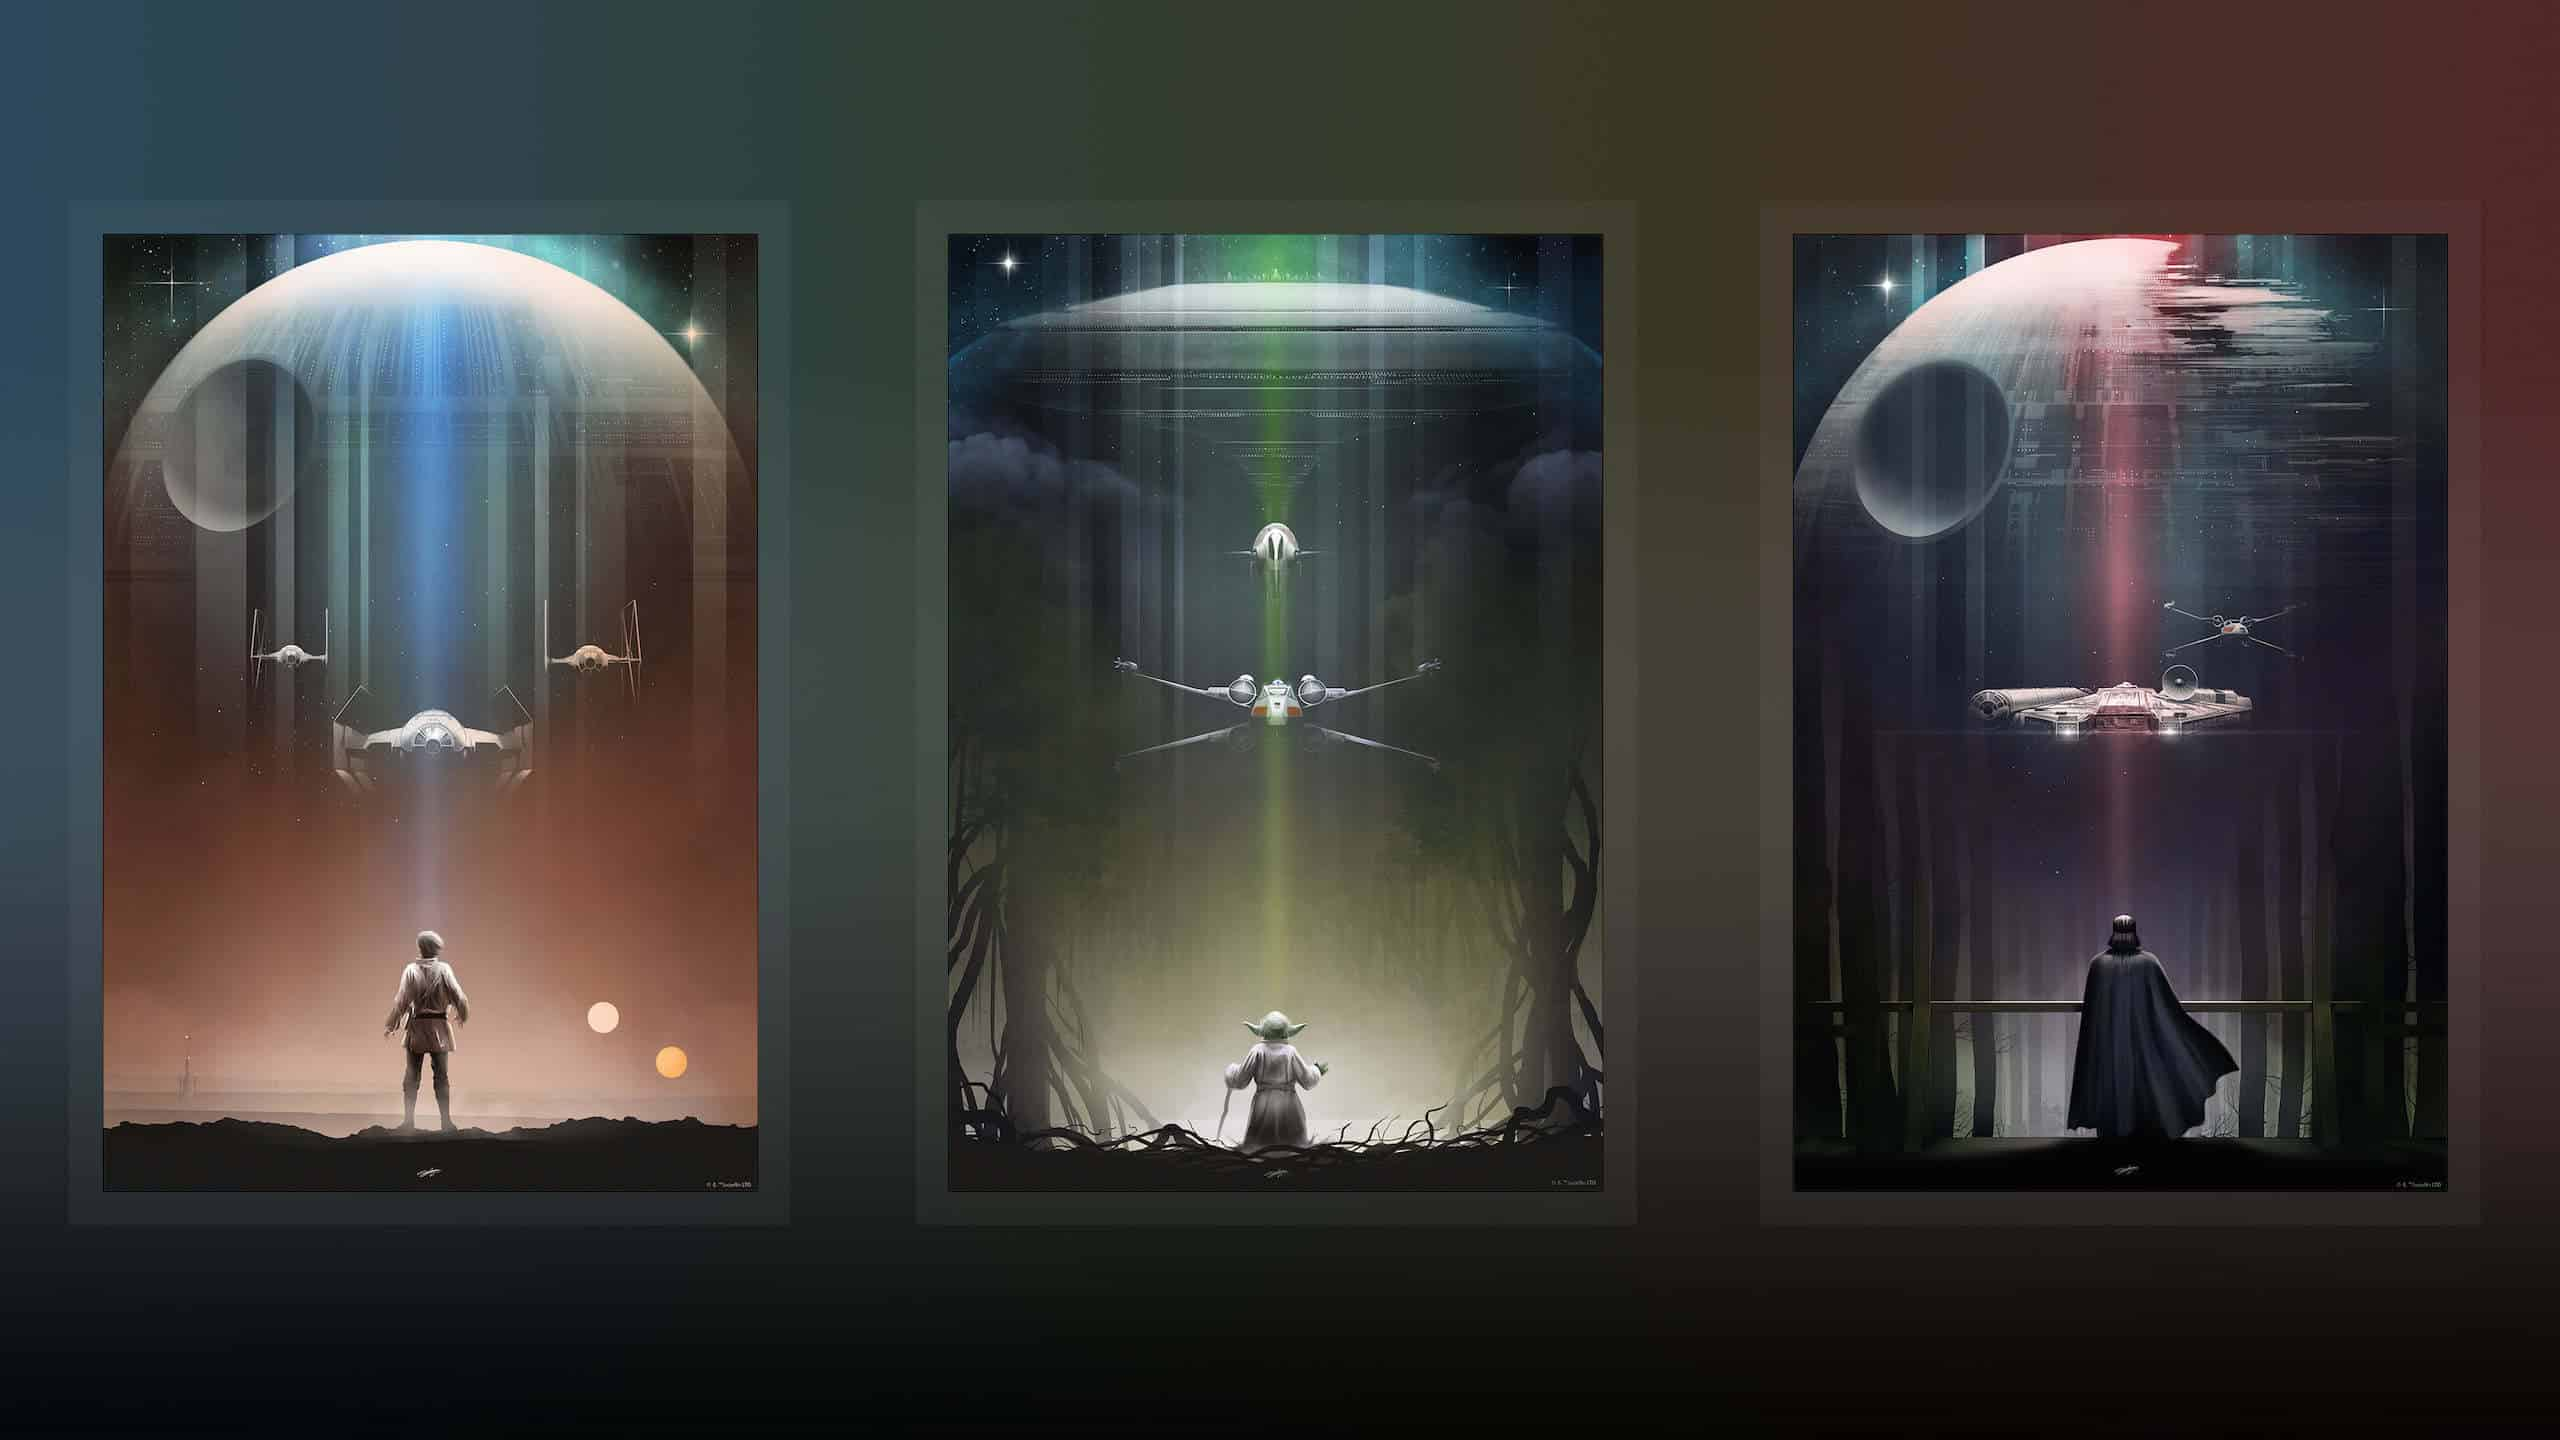 Star Wars Trilogy Posters Wqhd 1440p Wallpaper Pixelz